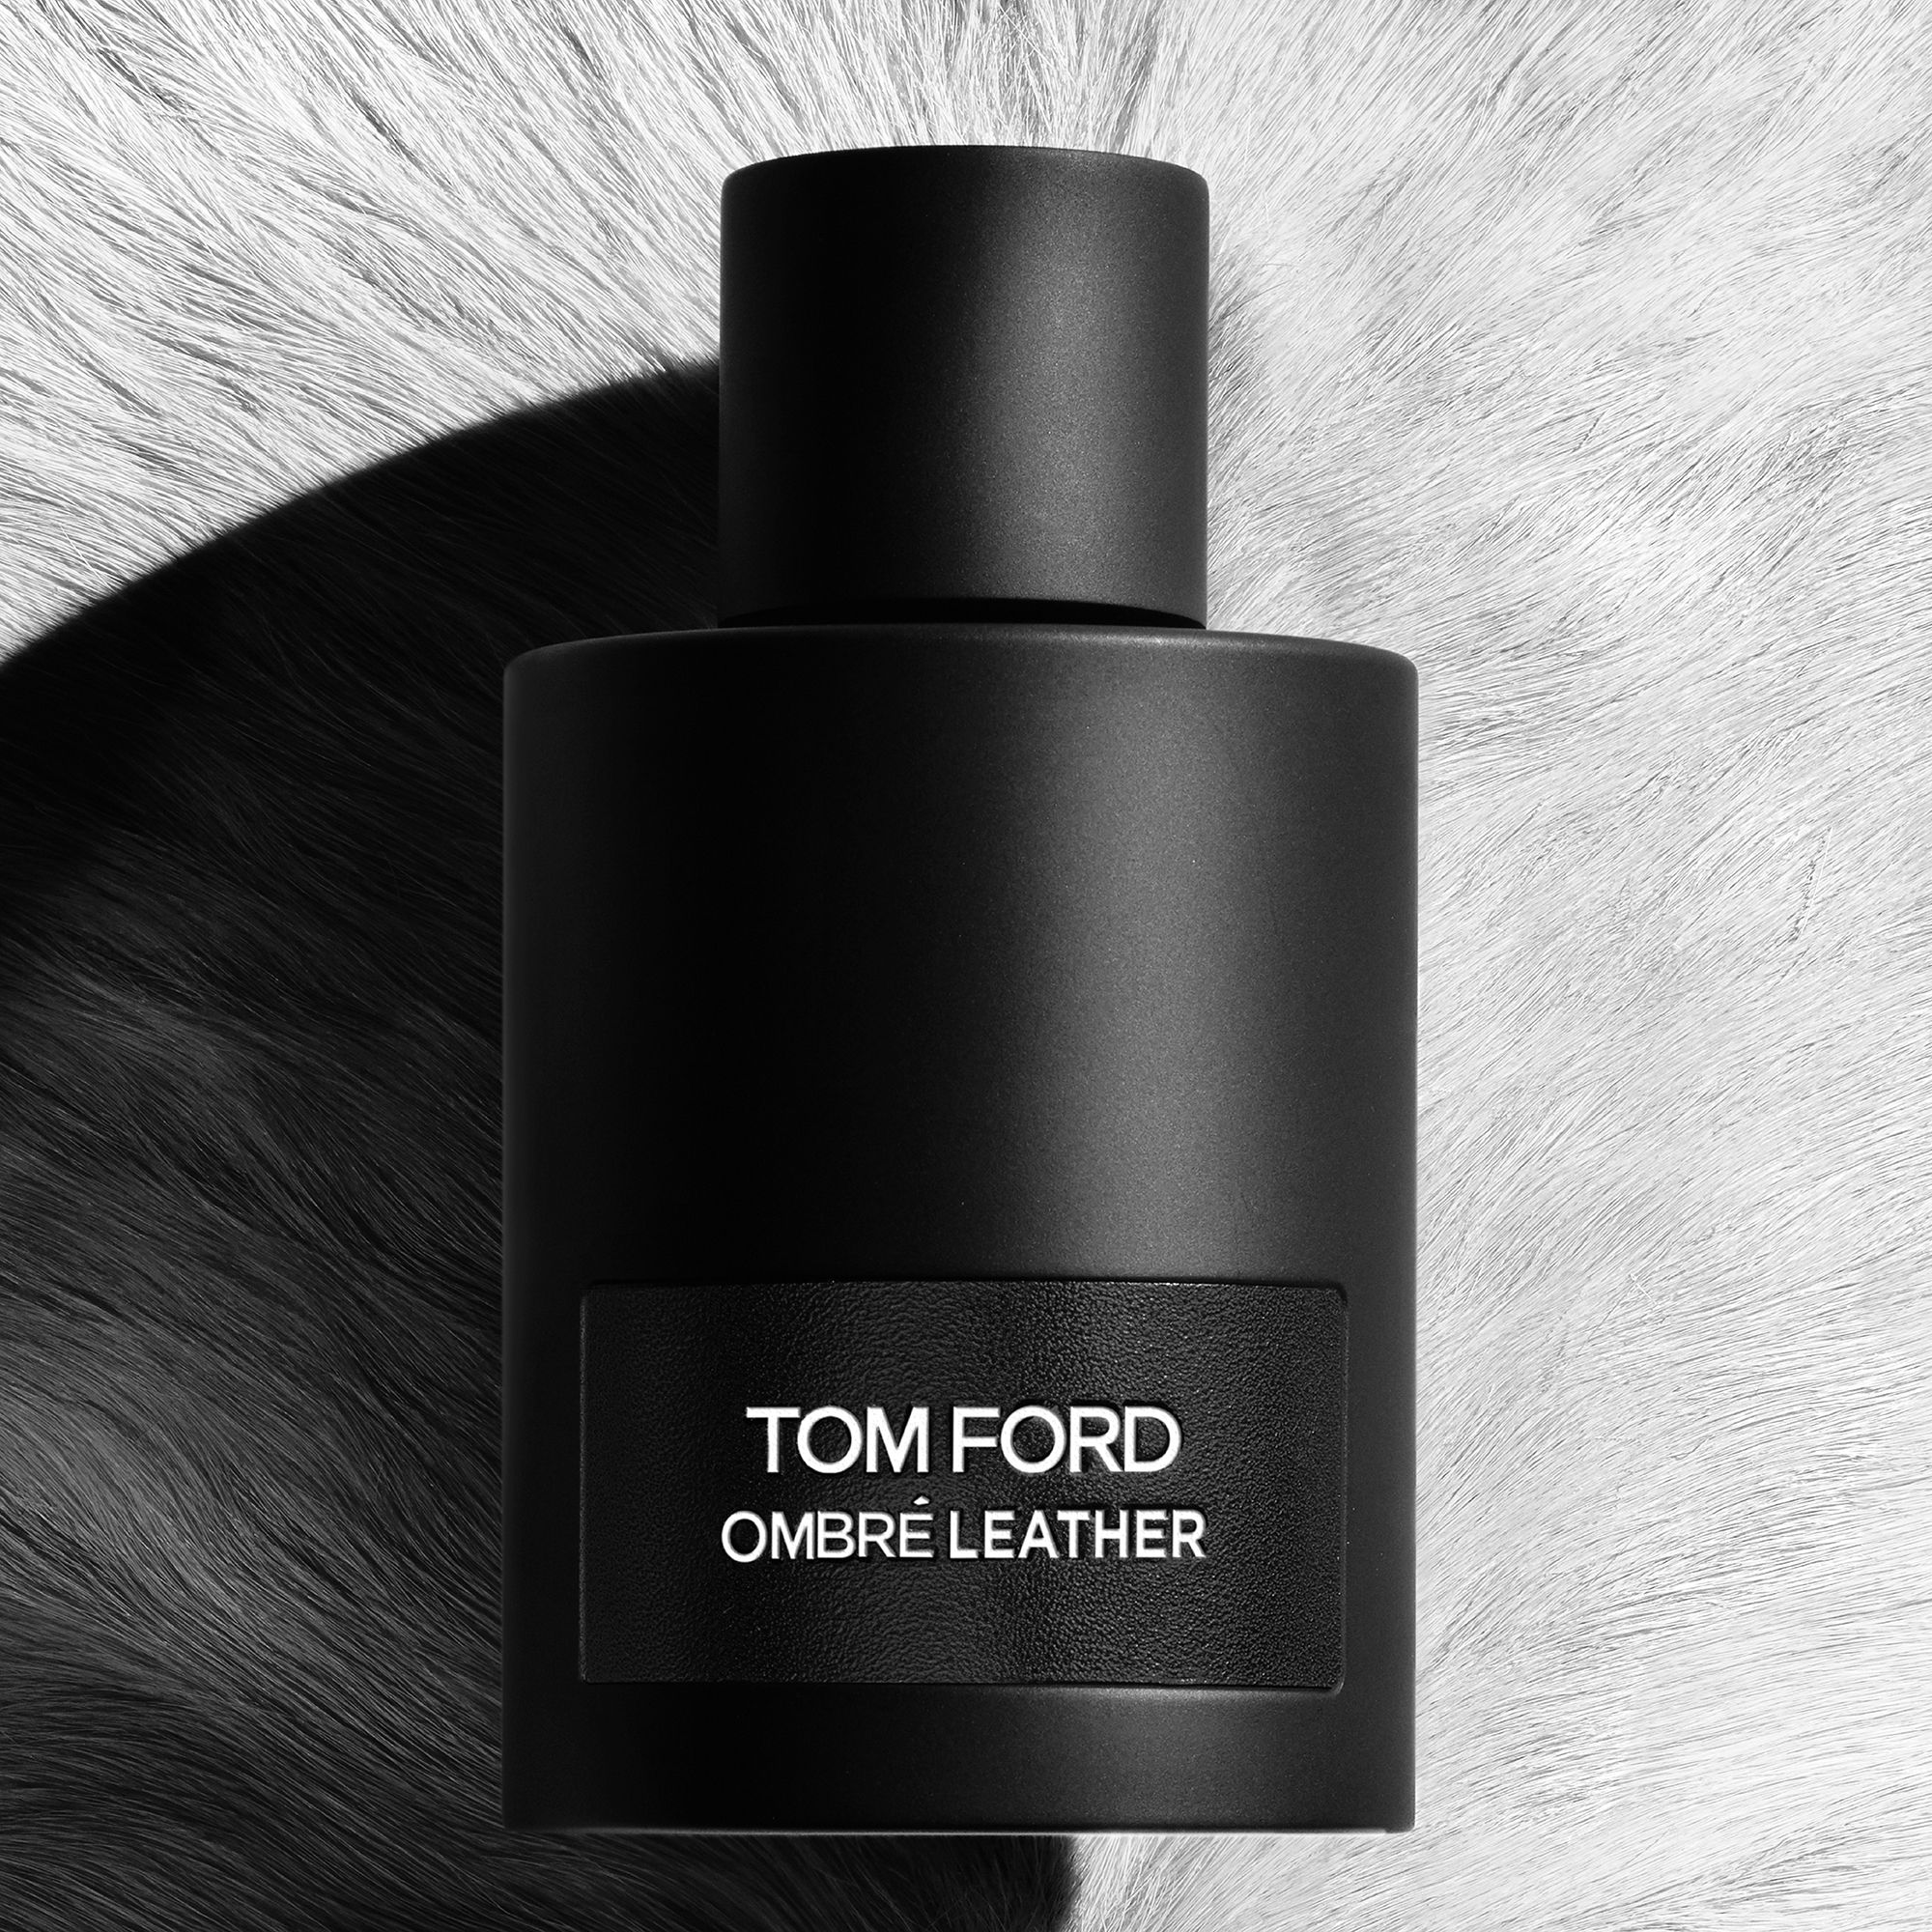 Introducing The New Ombre Leather For Men And Women Tomford